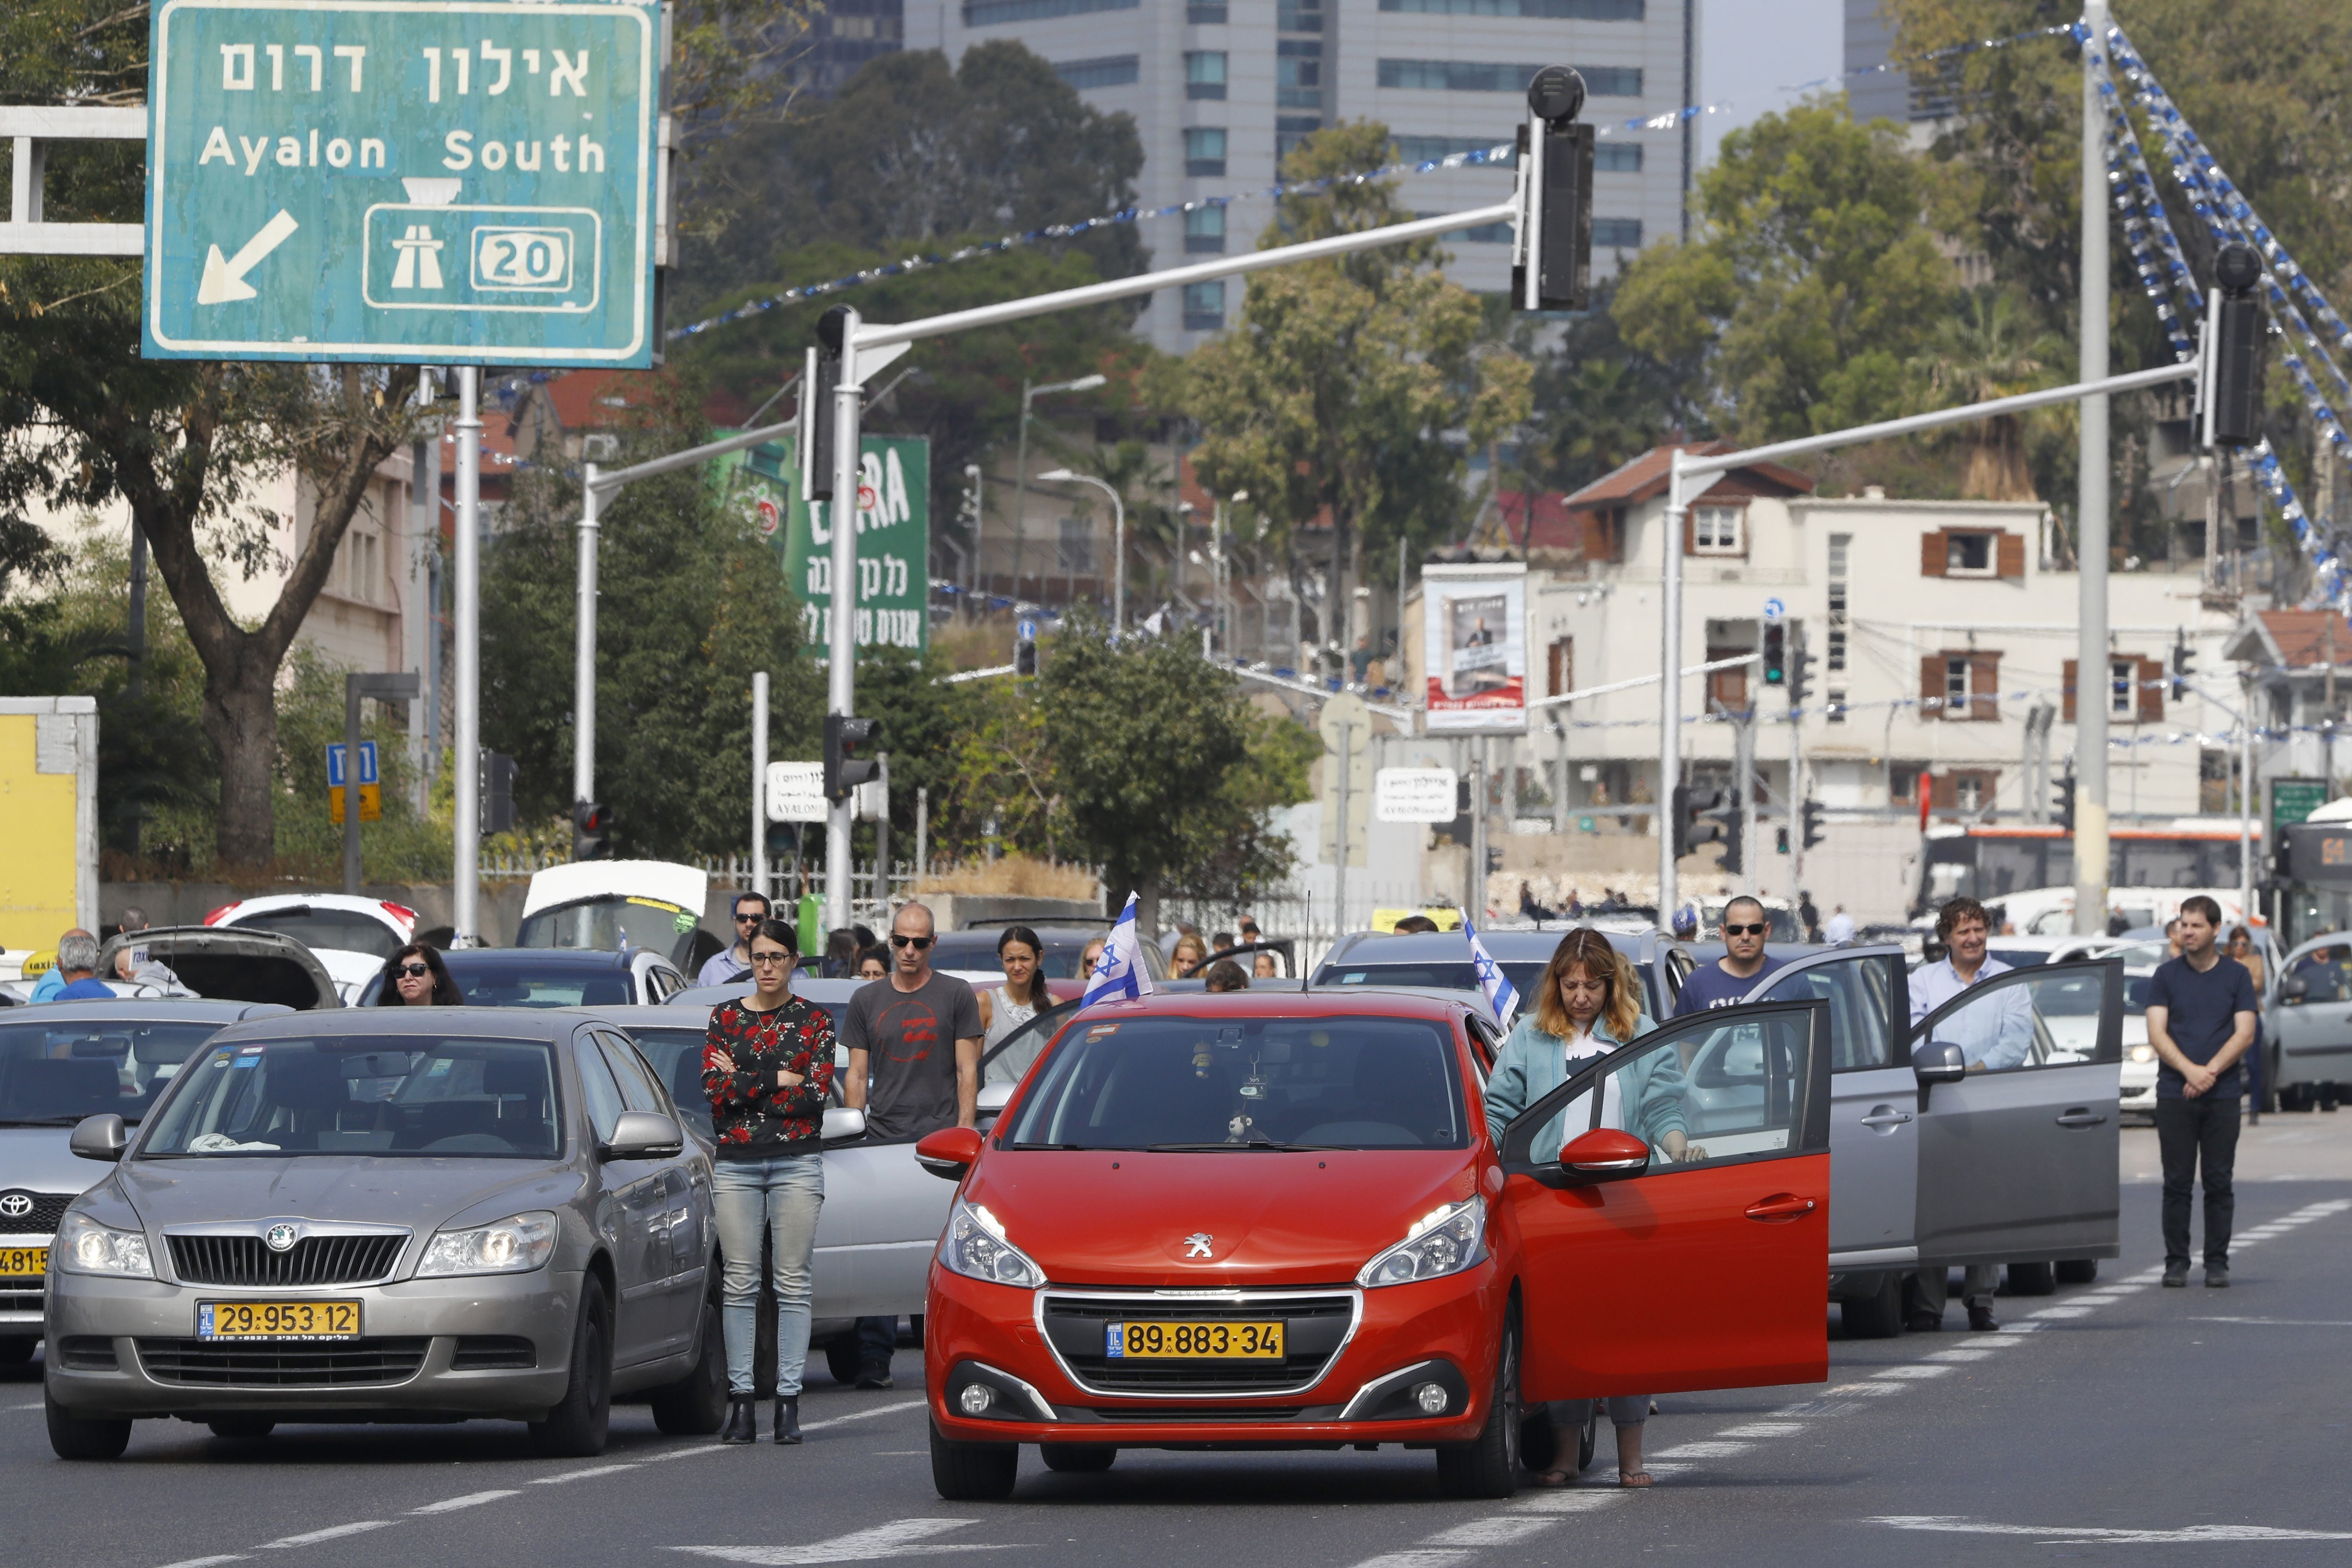 Drivers stop and stand in silence on a street in the Israeli city of Tel Aviv on April 12, 2017 as sirens wailed across Israel for two minutes marking the annual day of remembrance for the six million Jewish victims of the Nazi genocide.  Israel began marking Holocaust Martyrs and Heroes Remembrance Day at sundown on April 11 with a ceremony at the Yad Vashem memorial museum in Jerusalem, which commemorates the Jews killed by the Nazi regime during World War II. / AFP PHOTO / JACK GUEZ        (Photo credit should read JACK GUEZ/AFP/Getty Images)